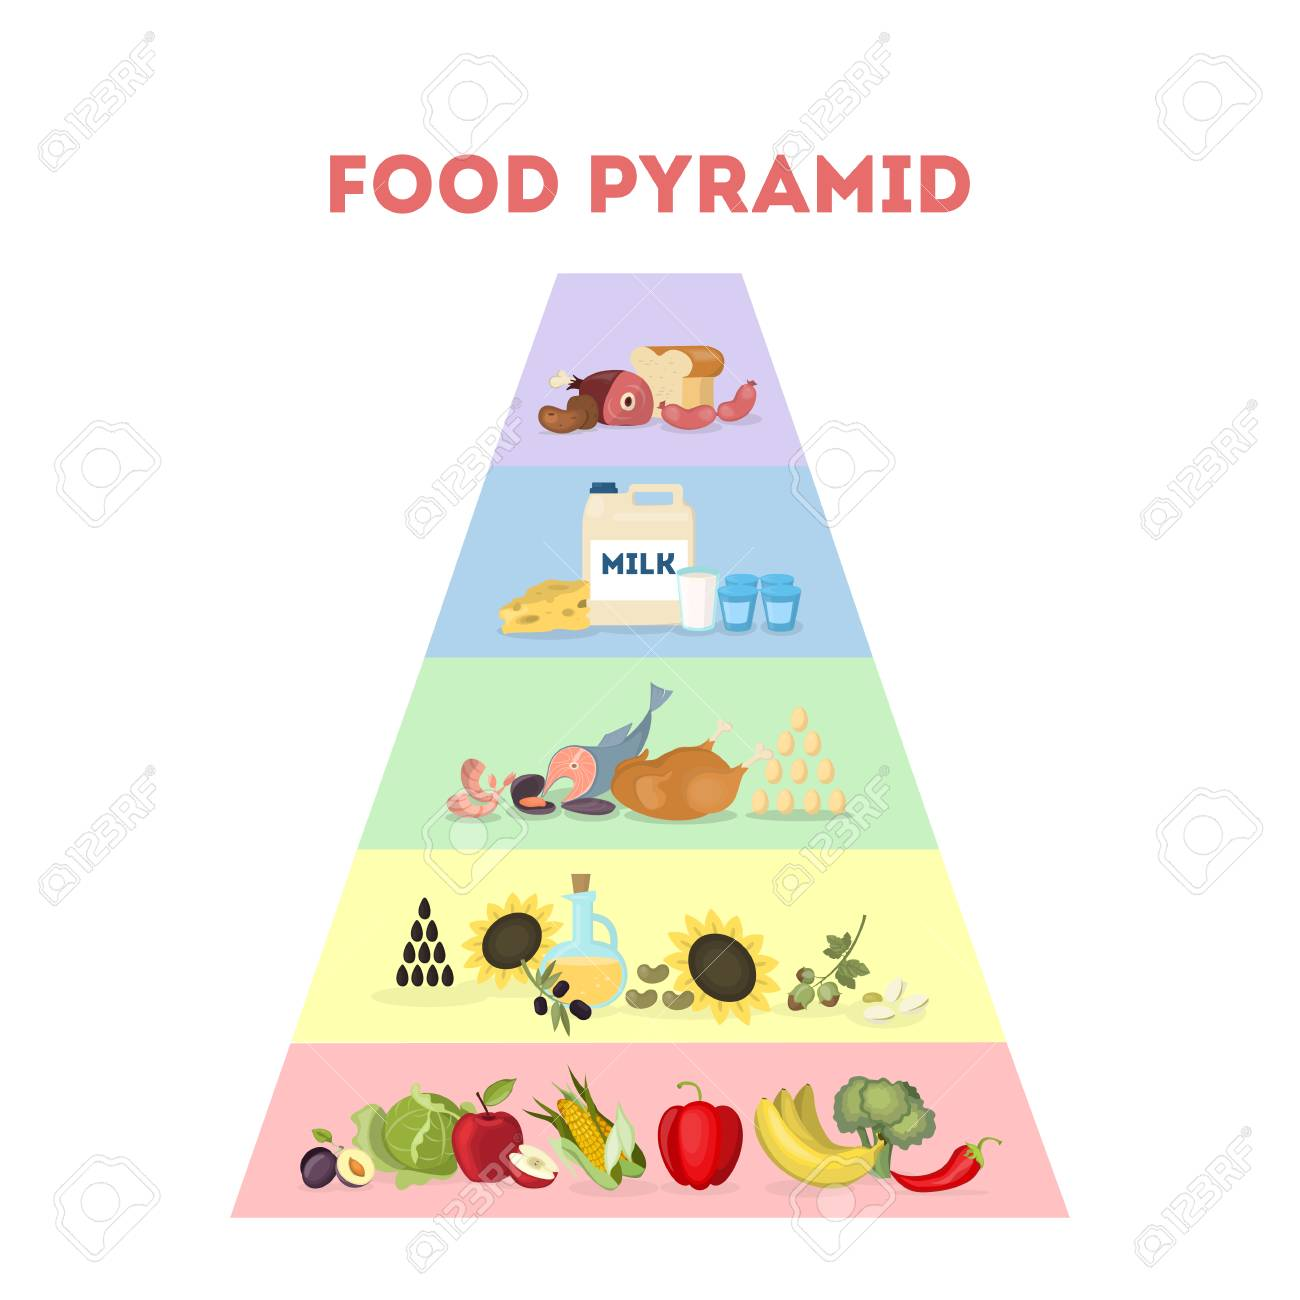 Food Pyramid Illustration All Types Of Food To Eat